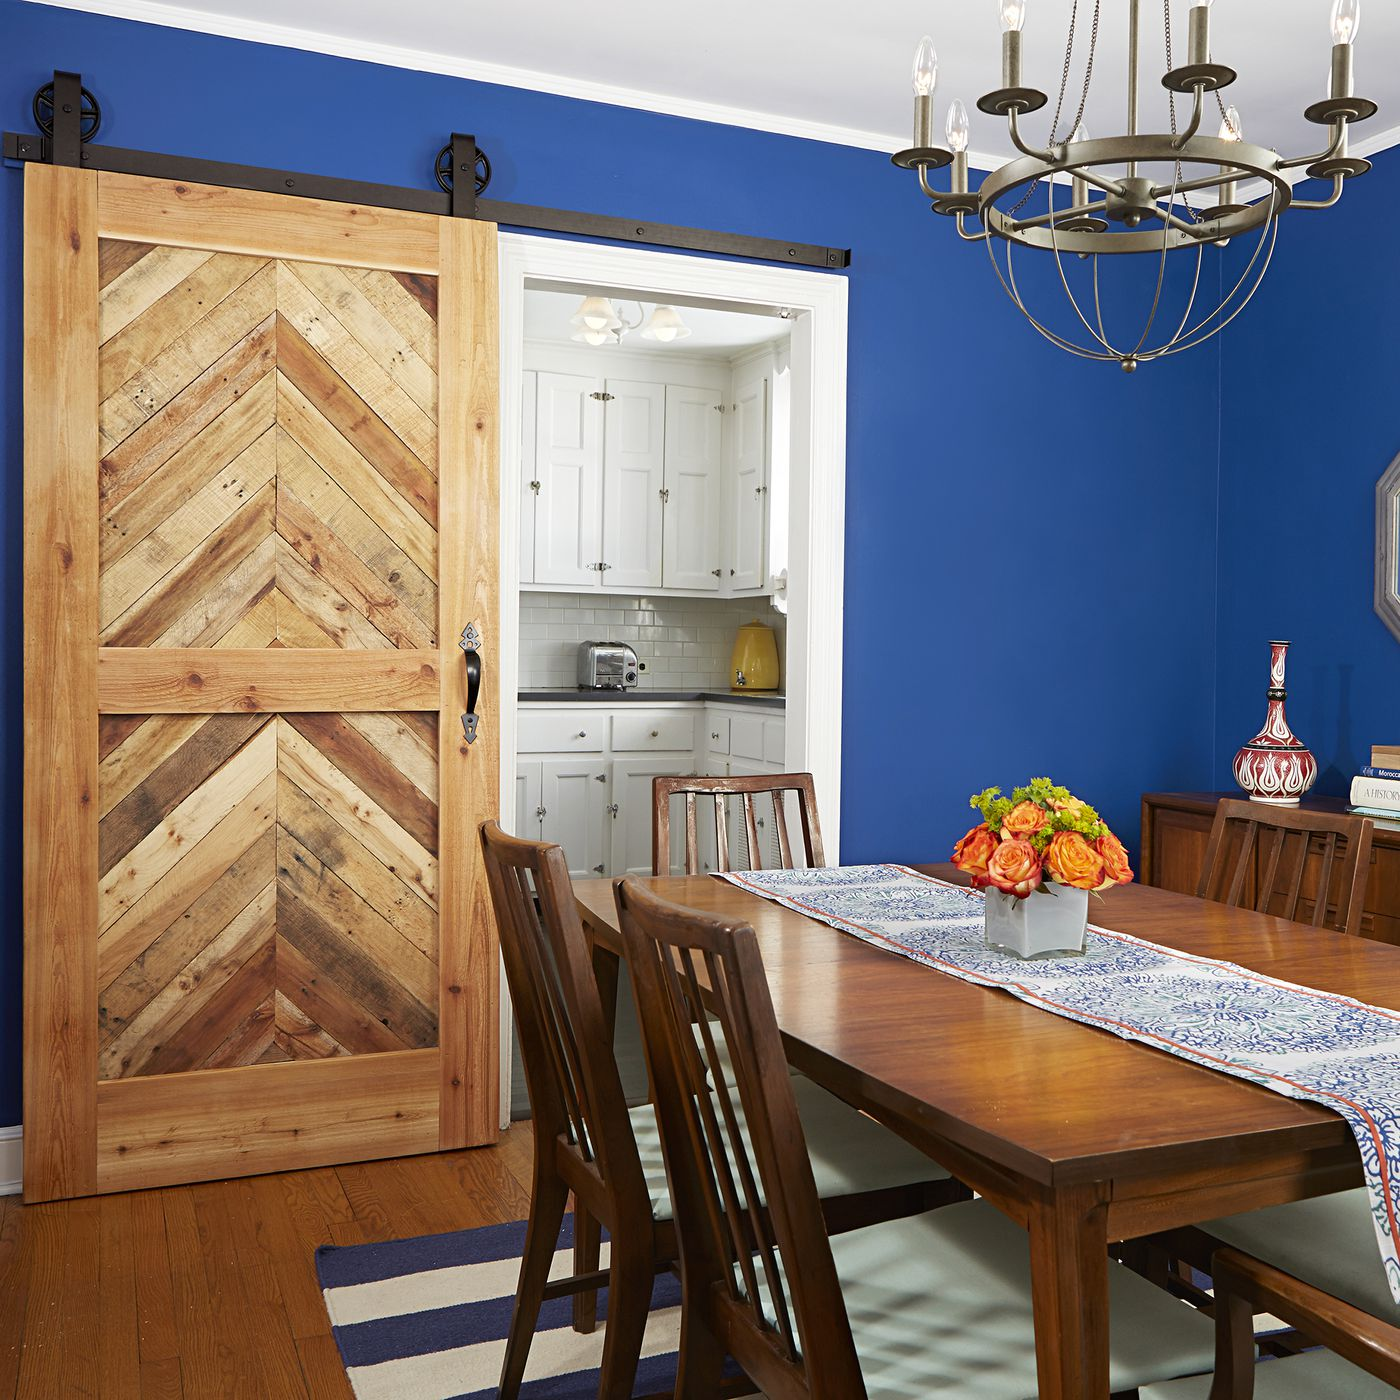 How to Build a Sliding Barn Door - This Old House Interior Design Red Bathroom Barn on red wallpaper bathrooms, red tile bathrooms, white design bathrooms,